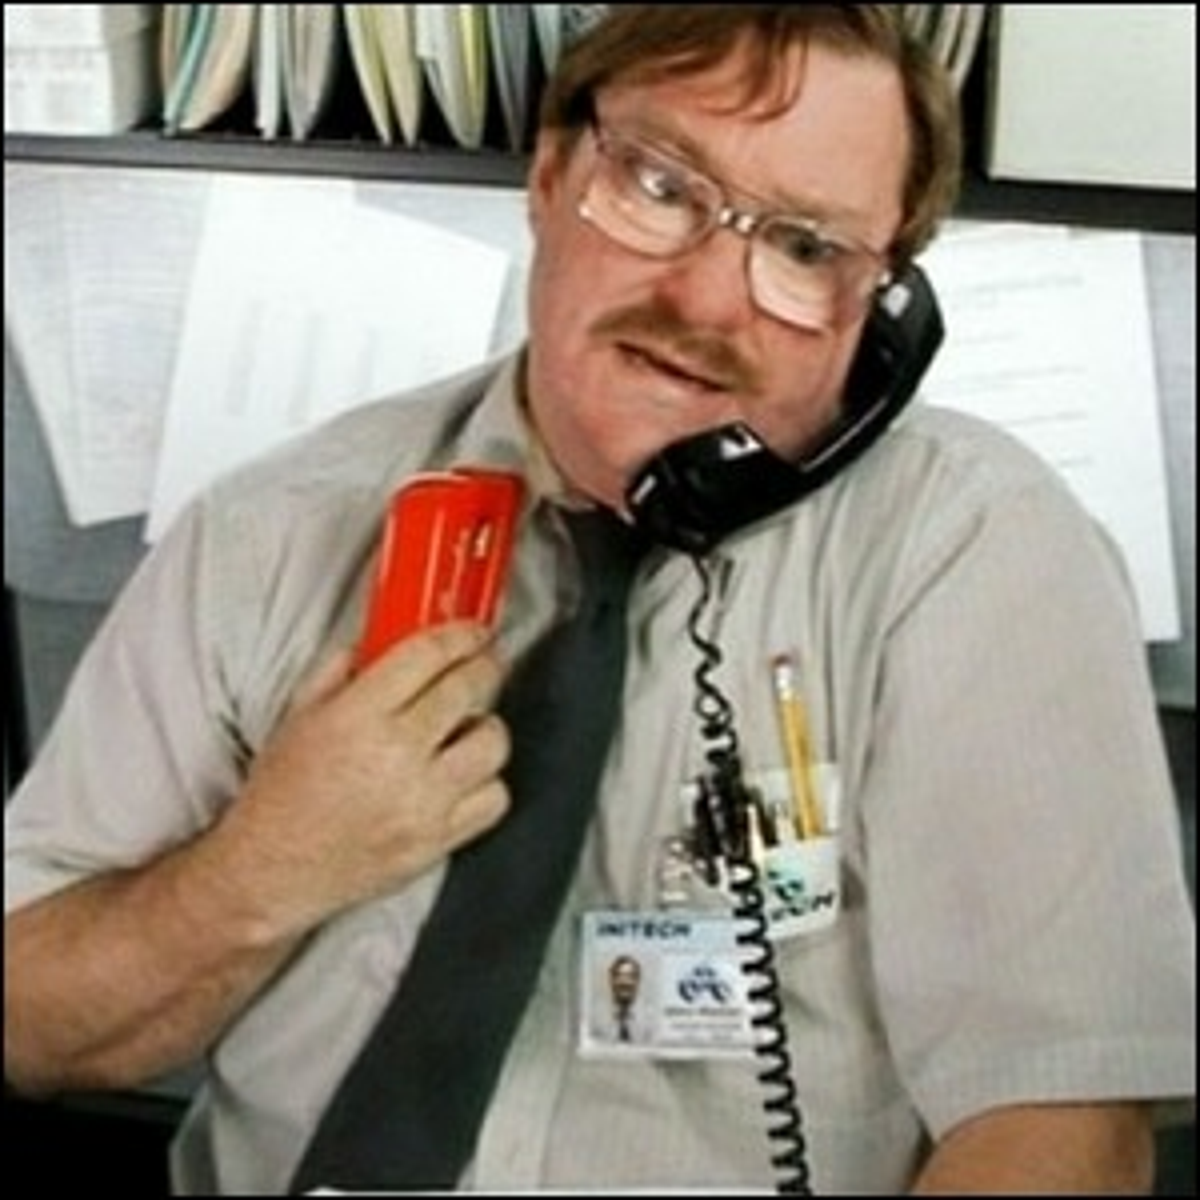 Milton, from the movie Office Space, holding his red stapler.